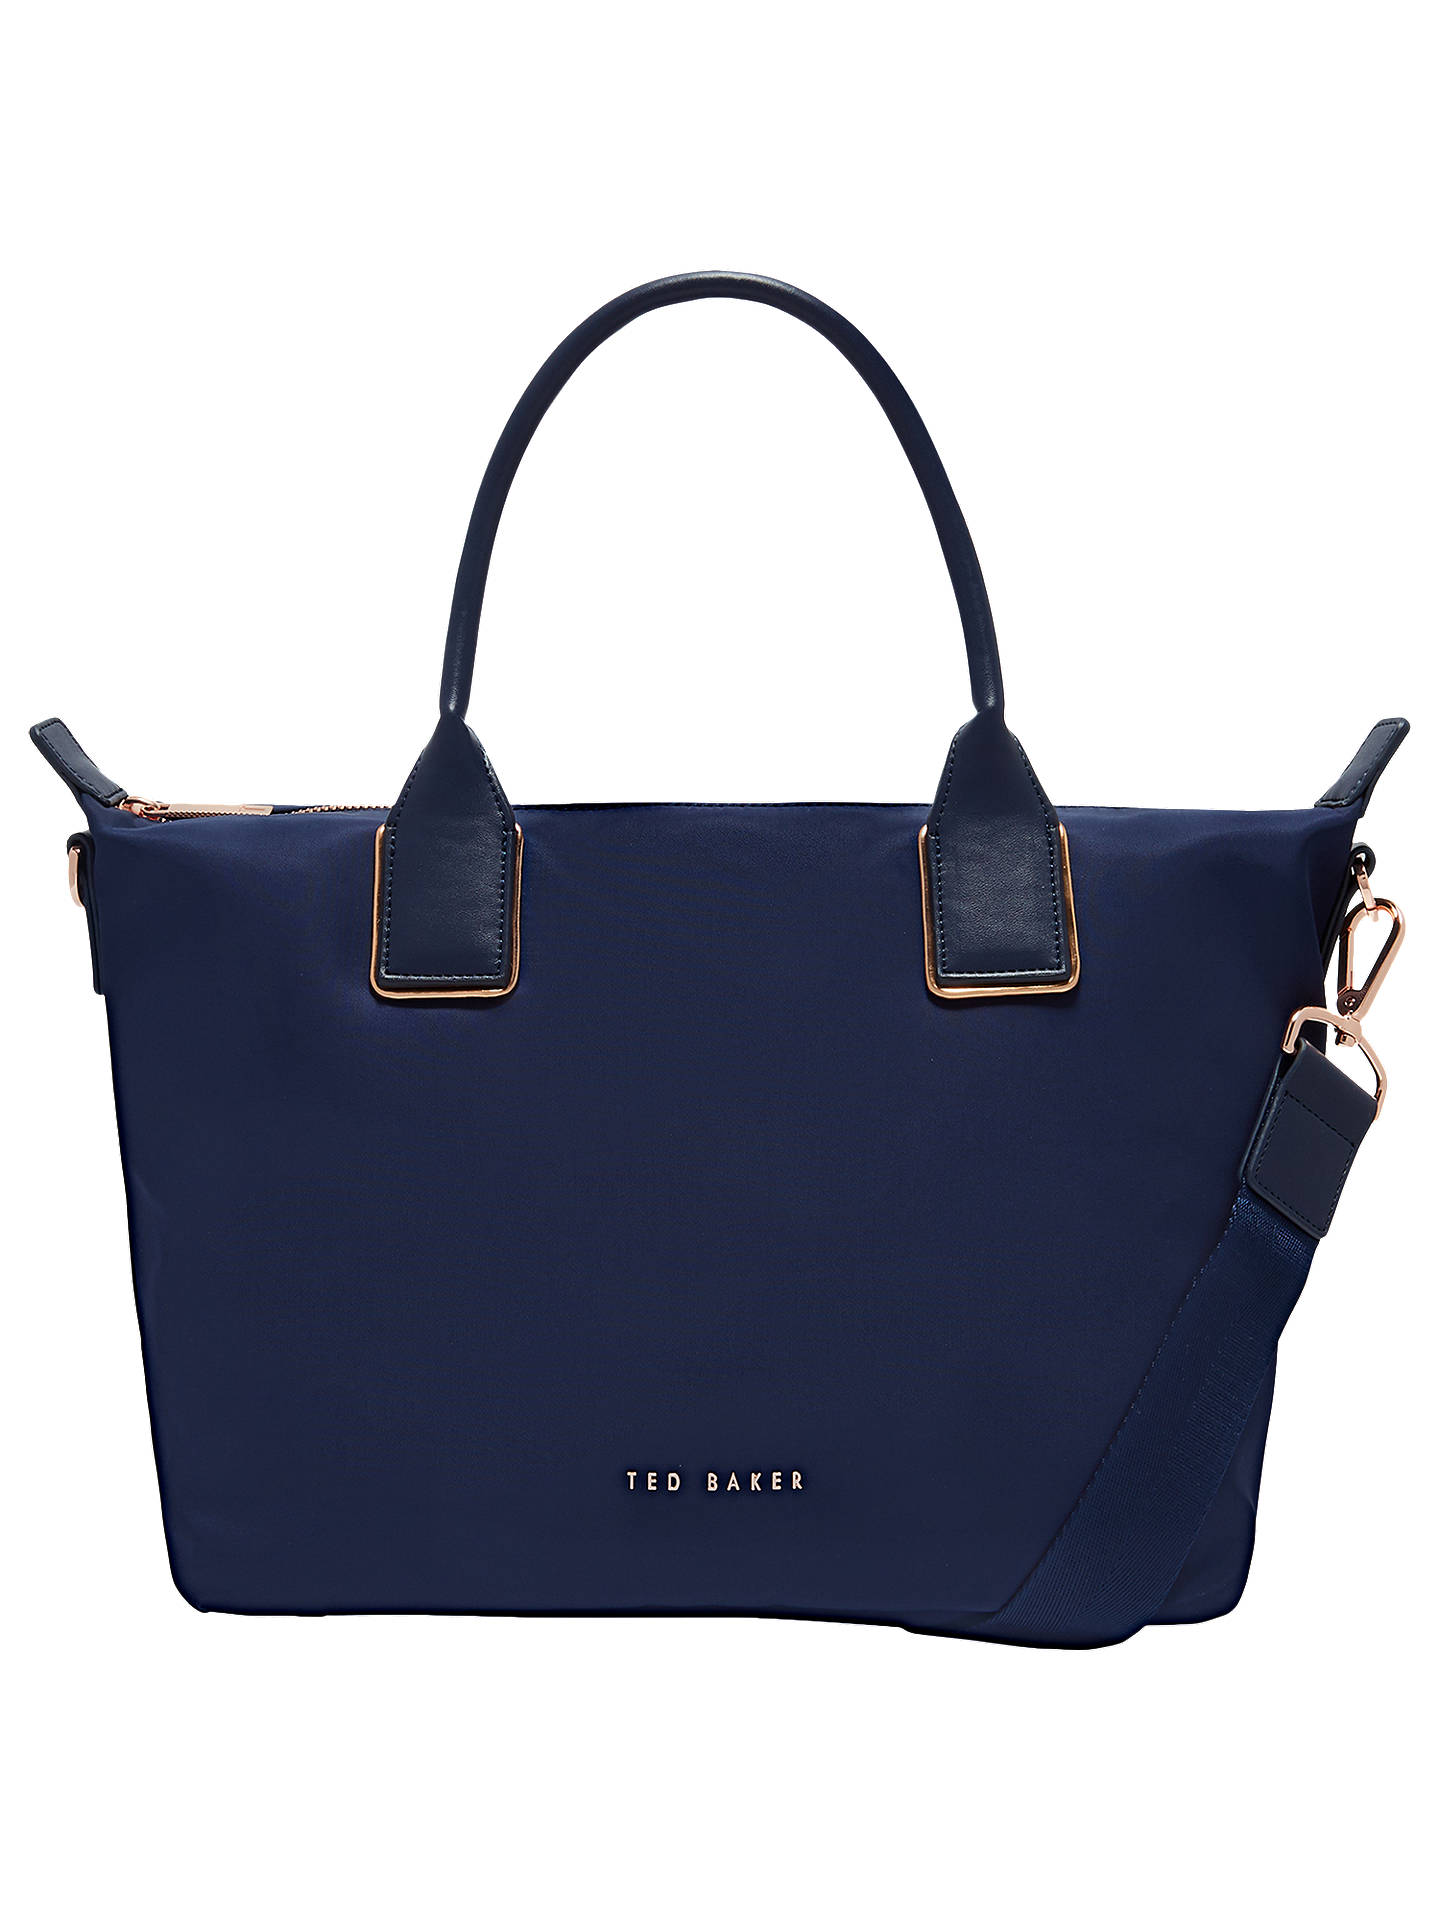 BuyTed Baker Jicksy Small Tote Bag, Dark Blue Online at johnlewis.com